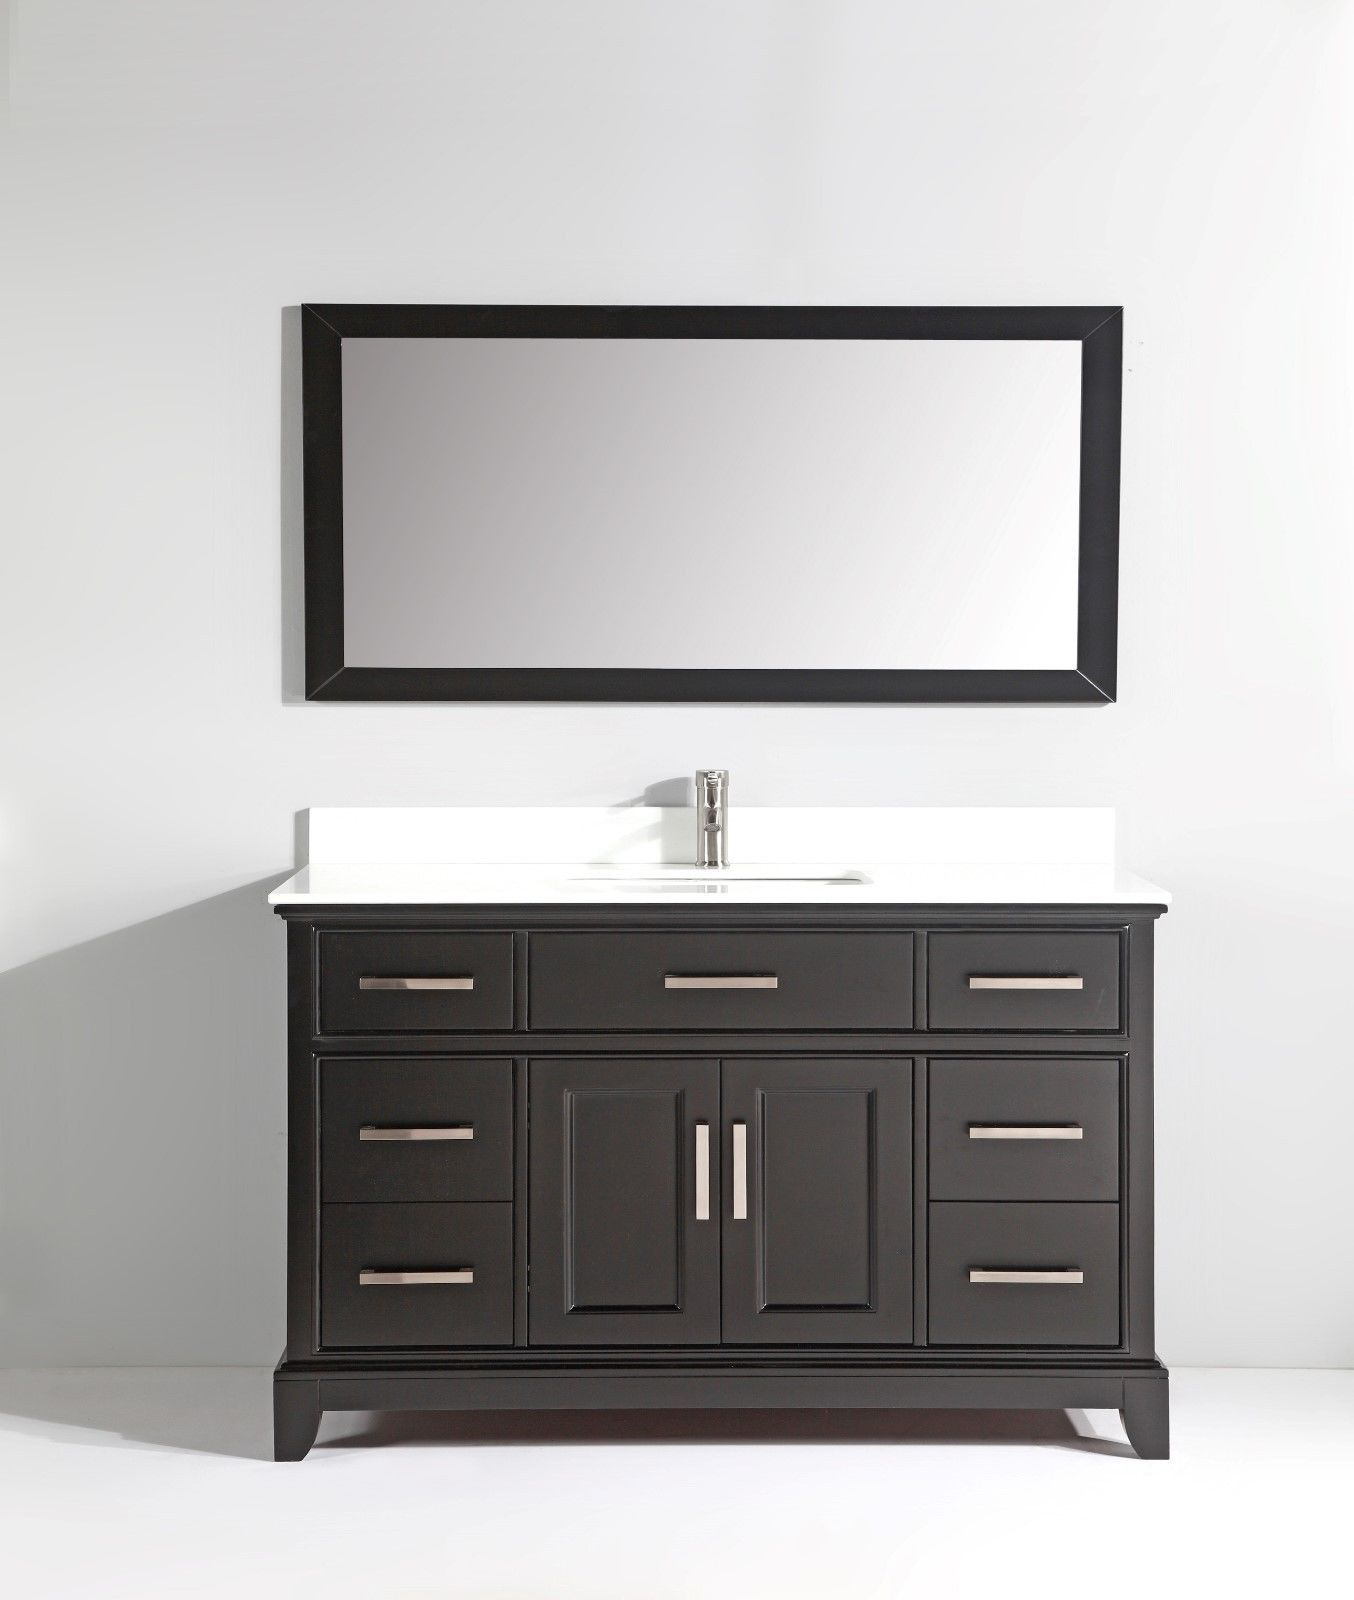 60 Double Bathroom Vanity For Sale Only 4 Left At 70